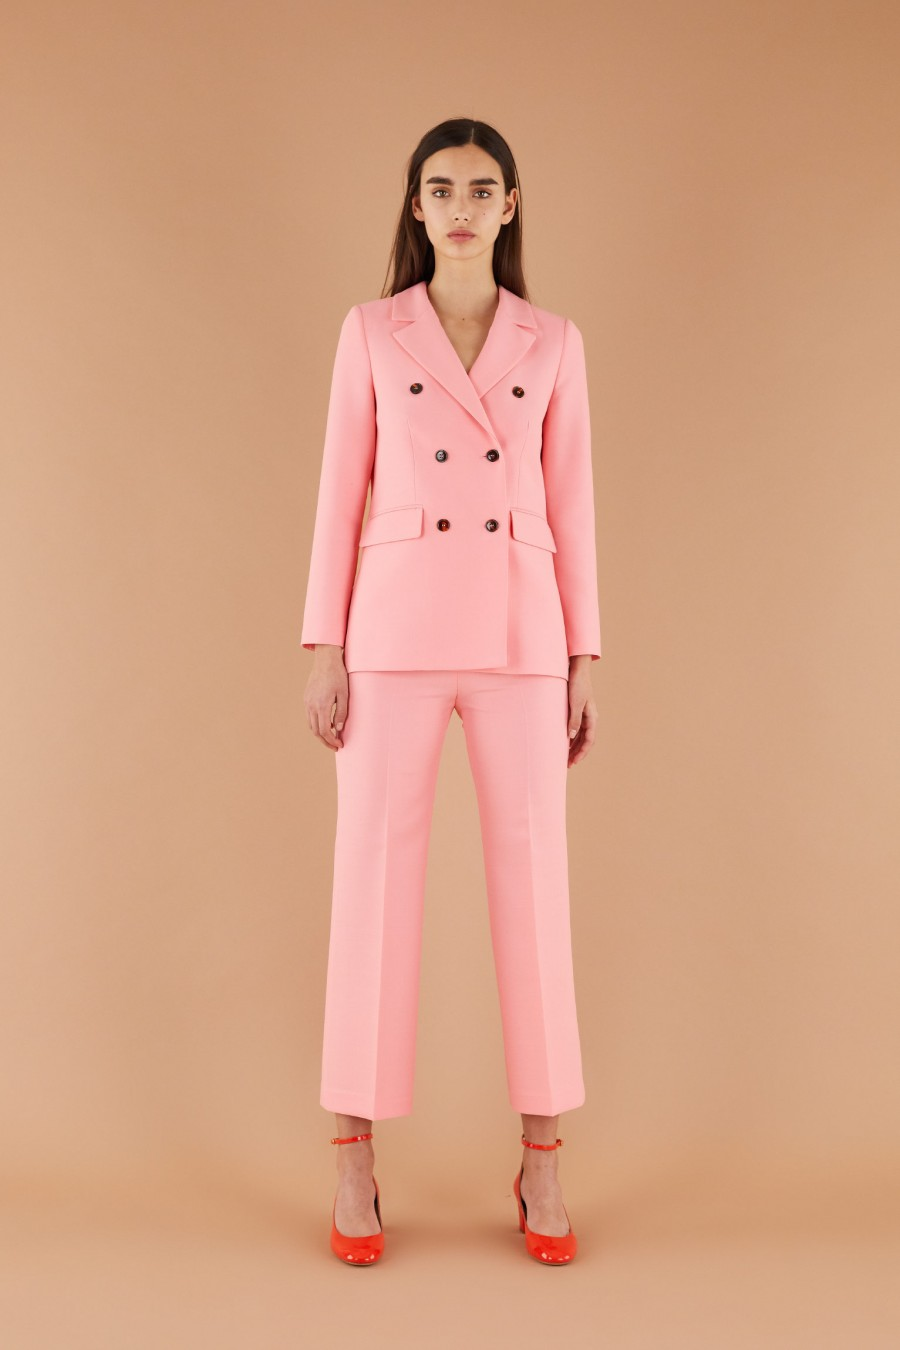 stylish bright pink suit